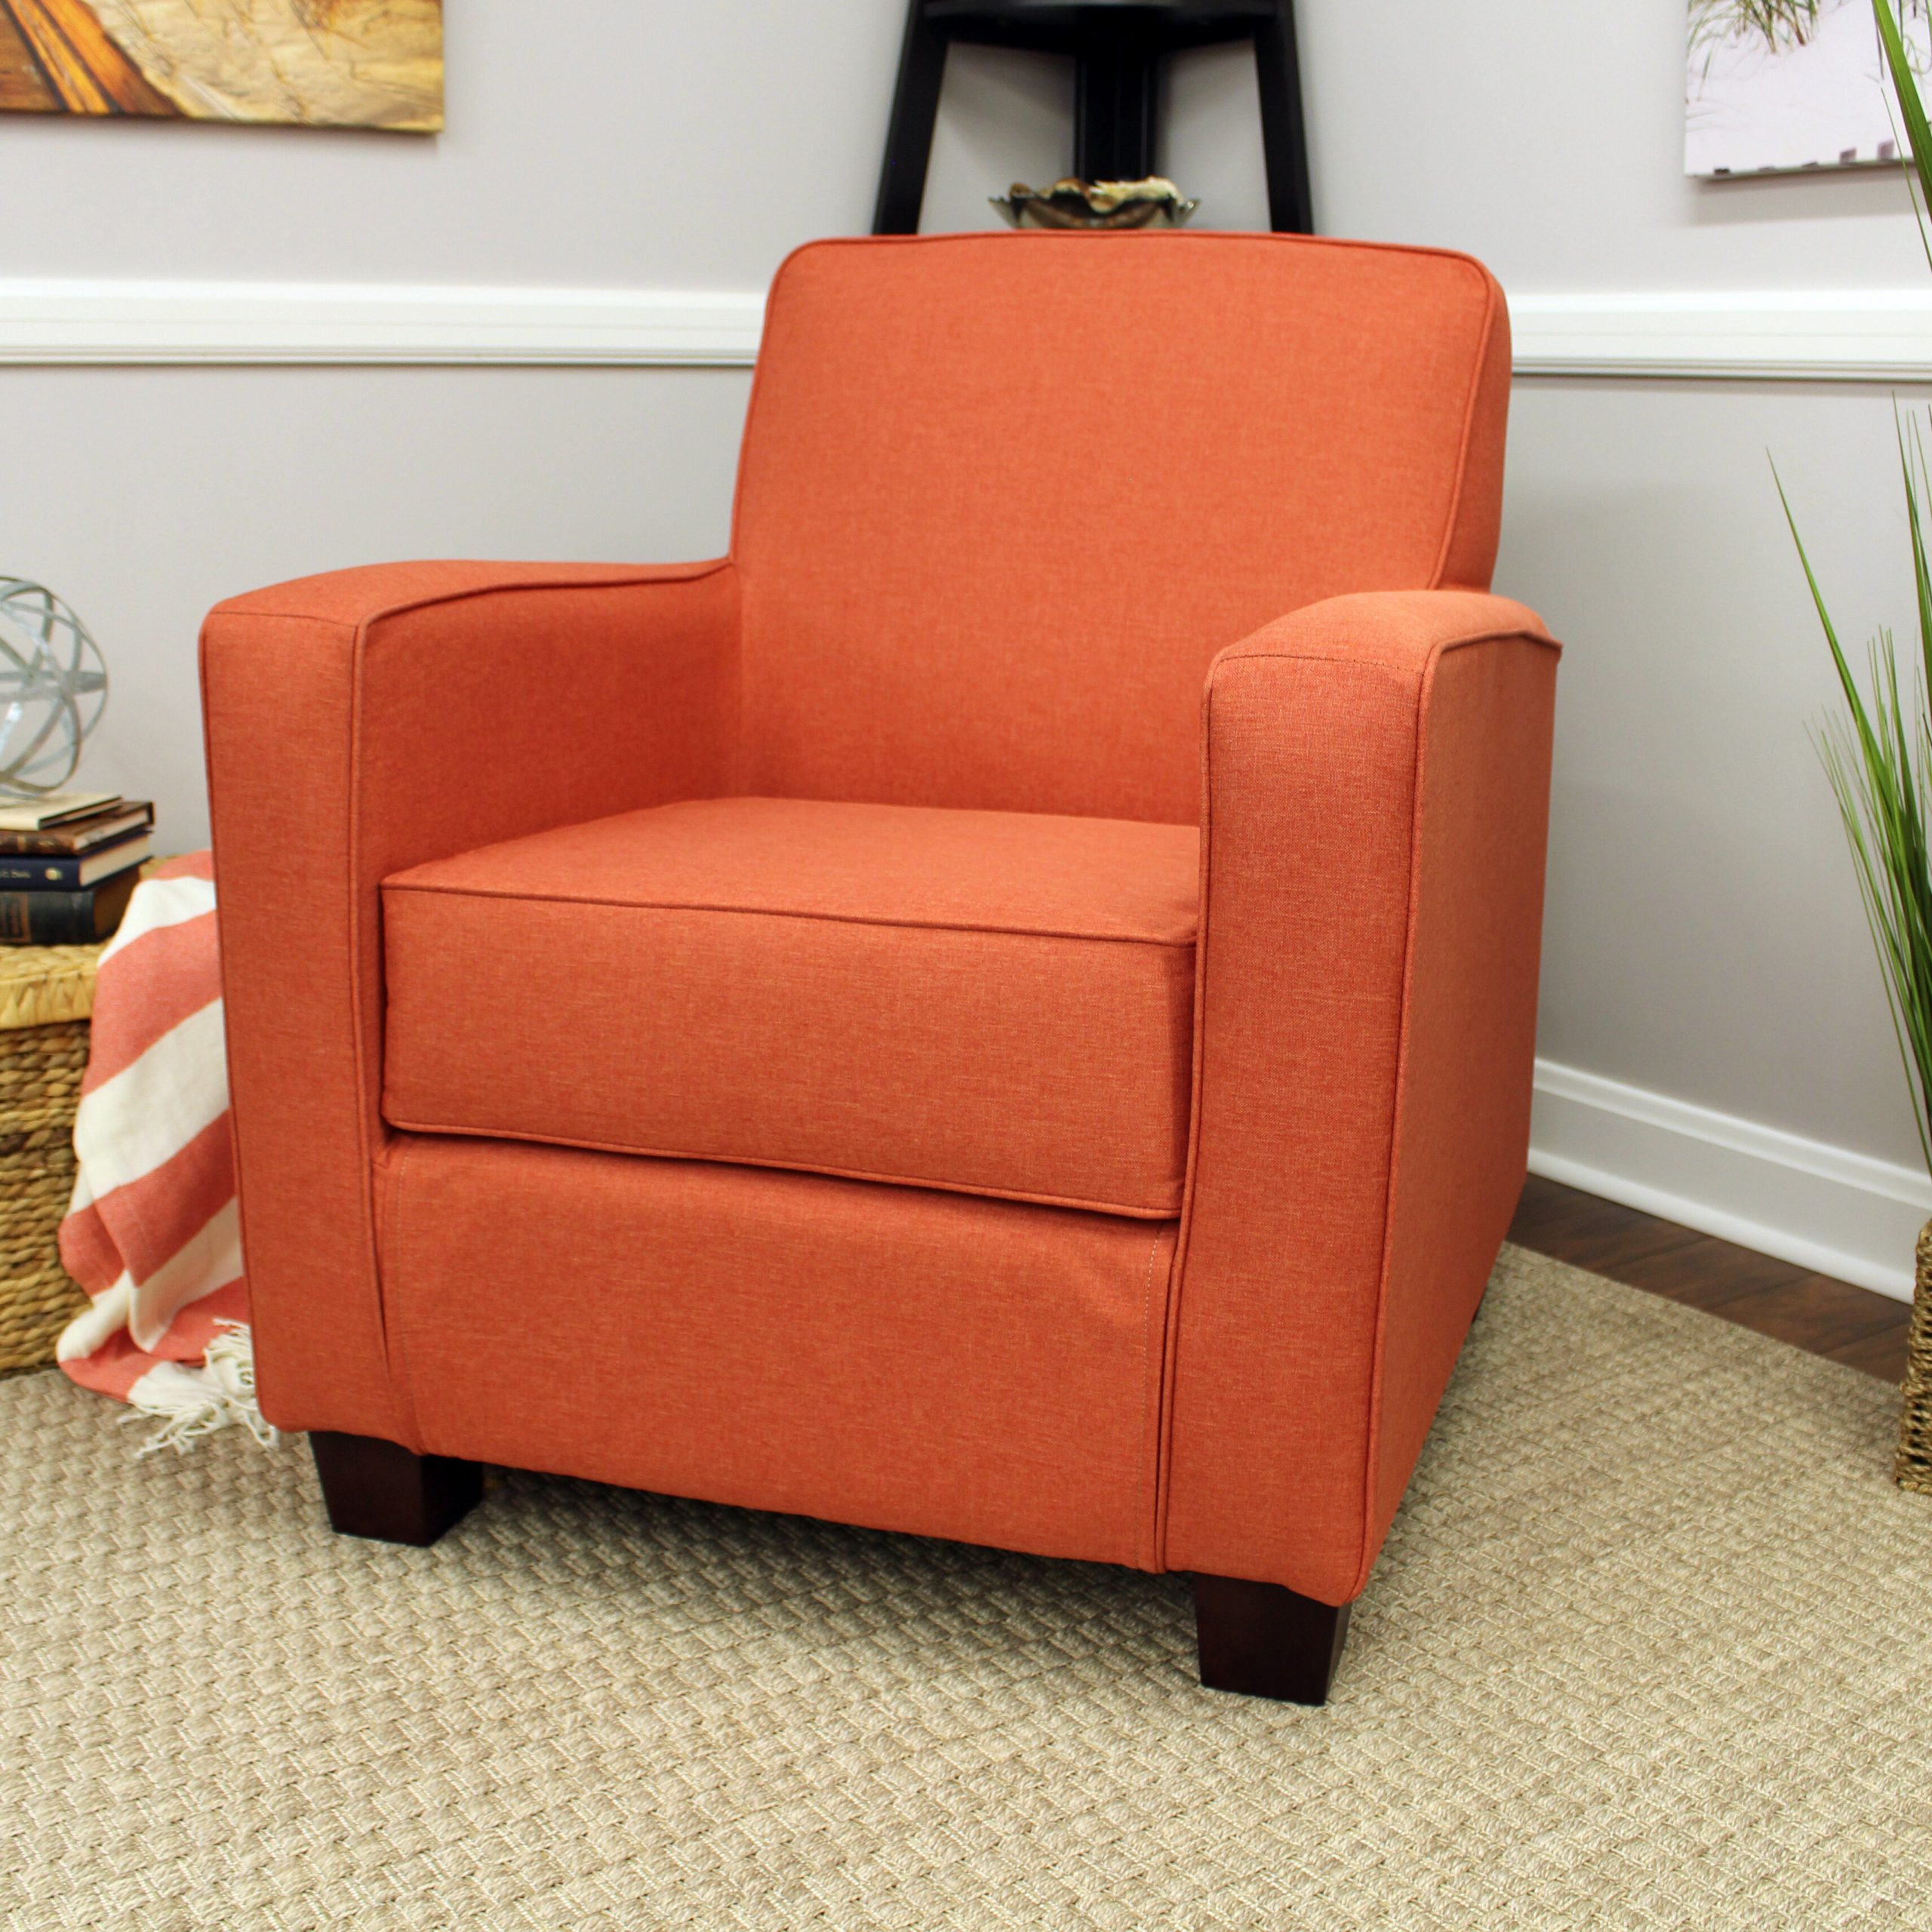 Brown Orange Accent Chairs You'Ll Love In 2021 | Wayfair Throughout Artressia Barrel Chairs (View 11 of 15)